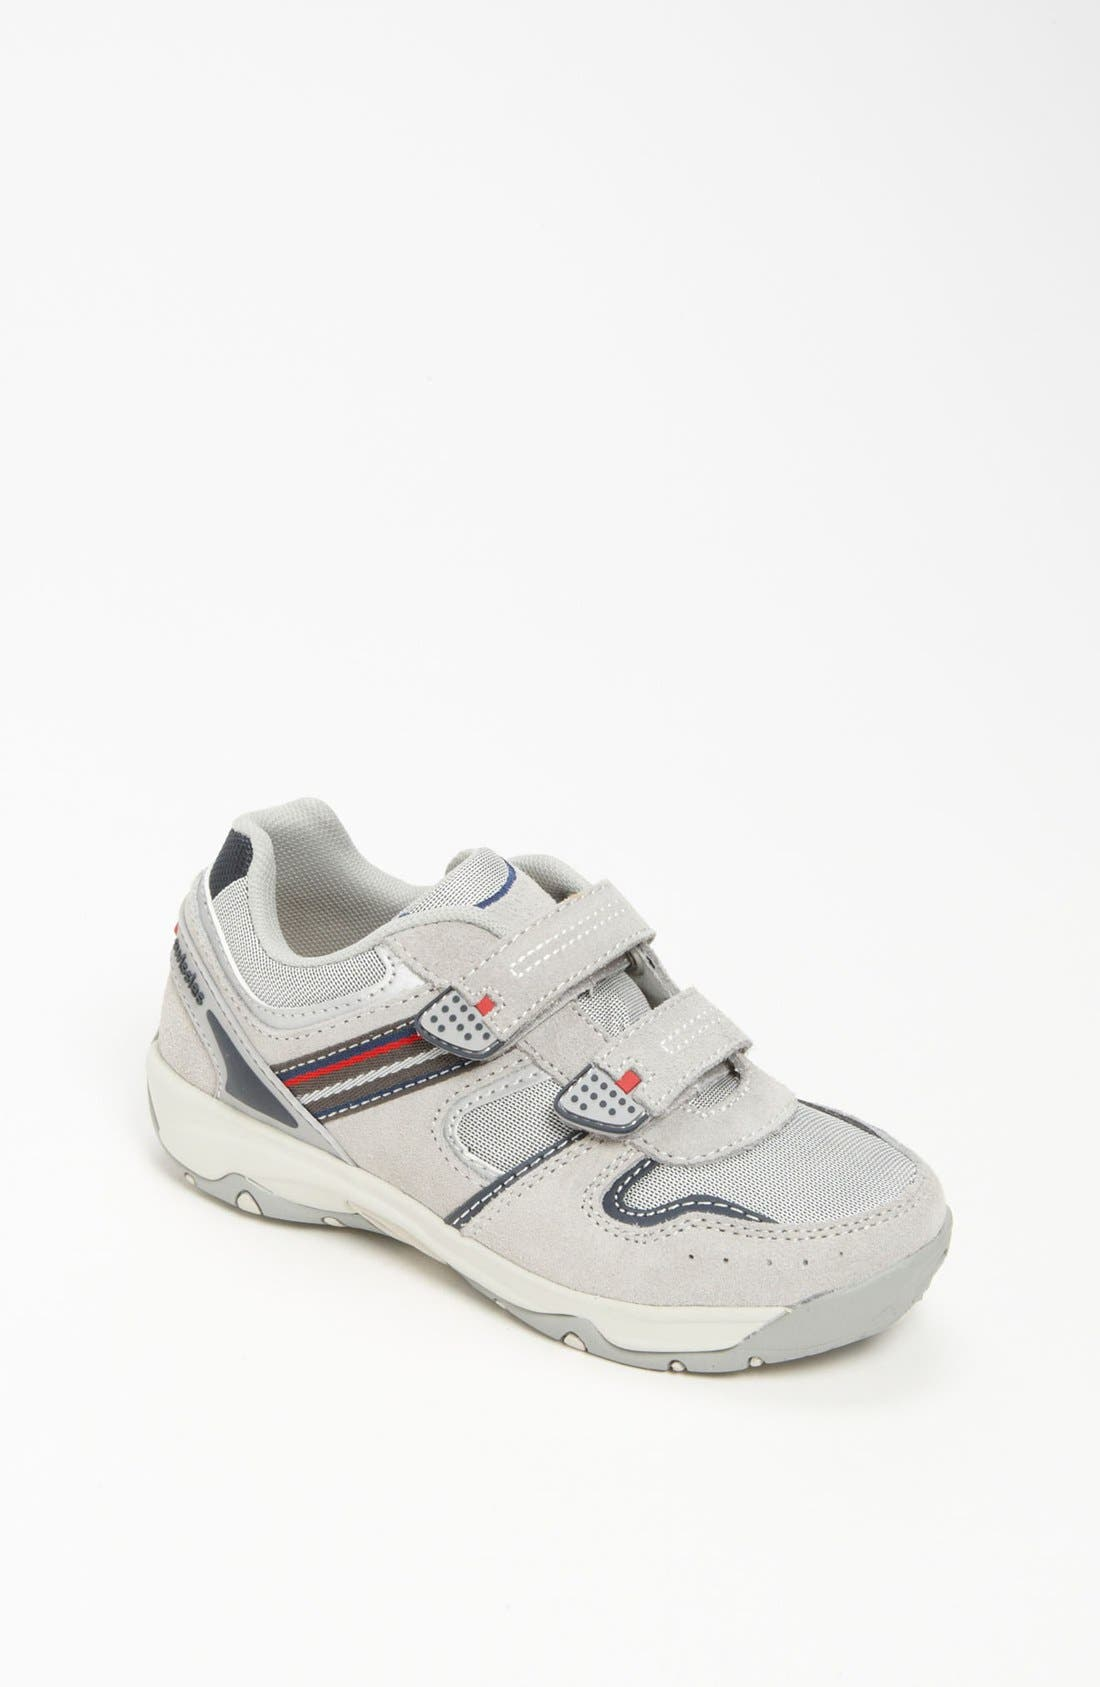 Alternate Image 1 Selected - Swissies 'Terry' Sneaker (Toddler & Little Kid)